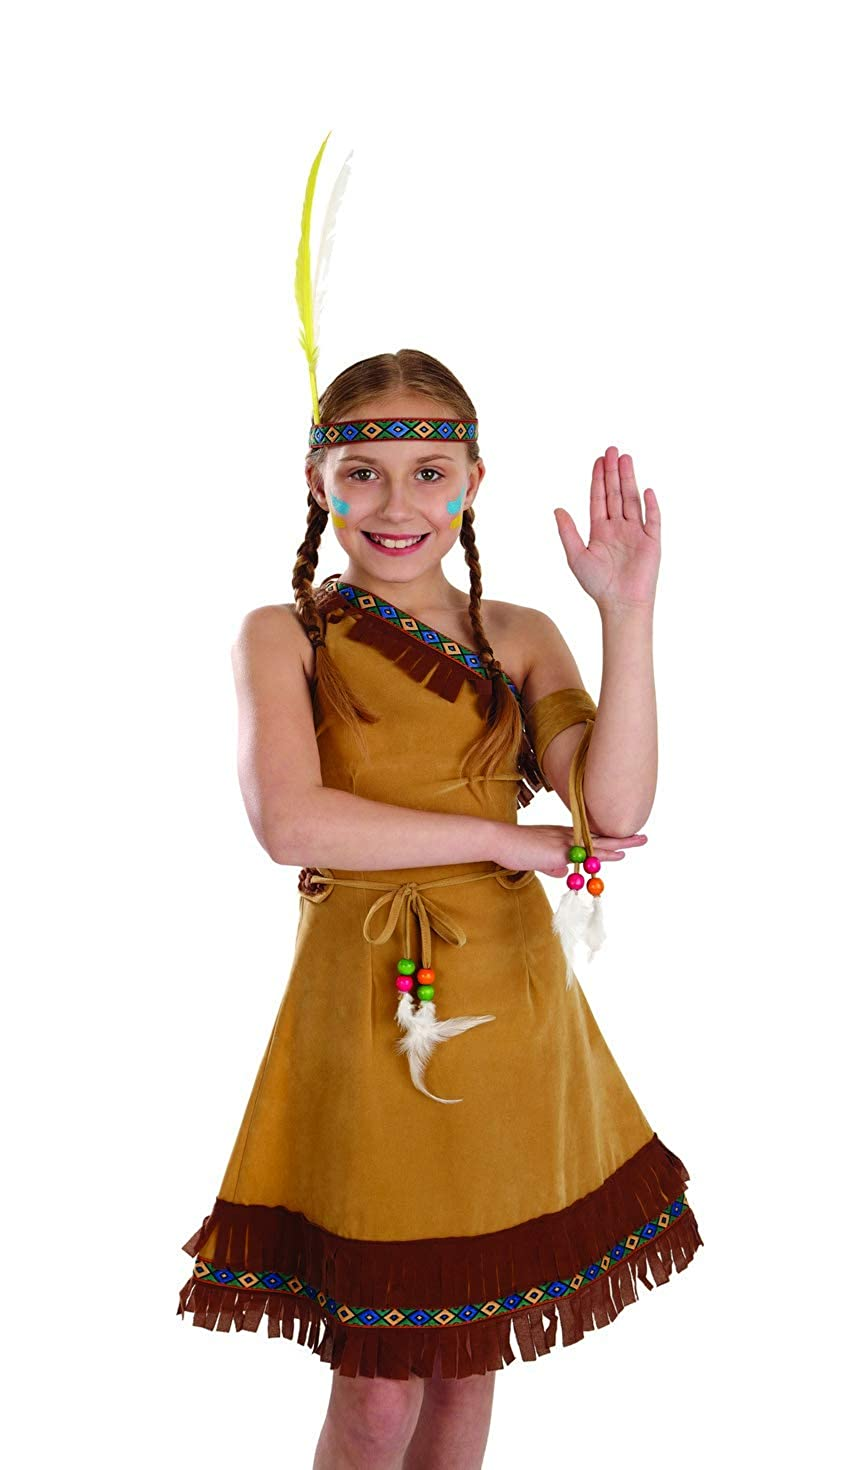 Girls Native American Costume Childrens Brown Fringed Indian Dress Outfit